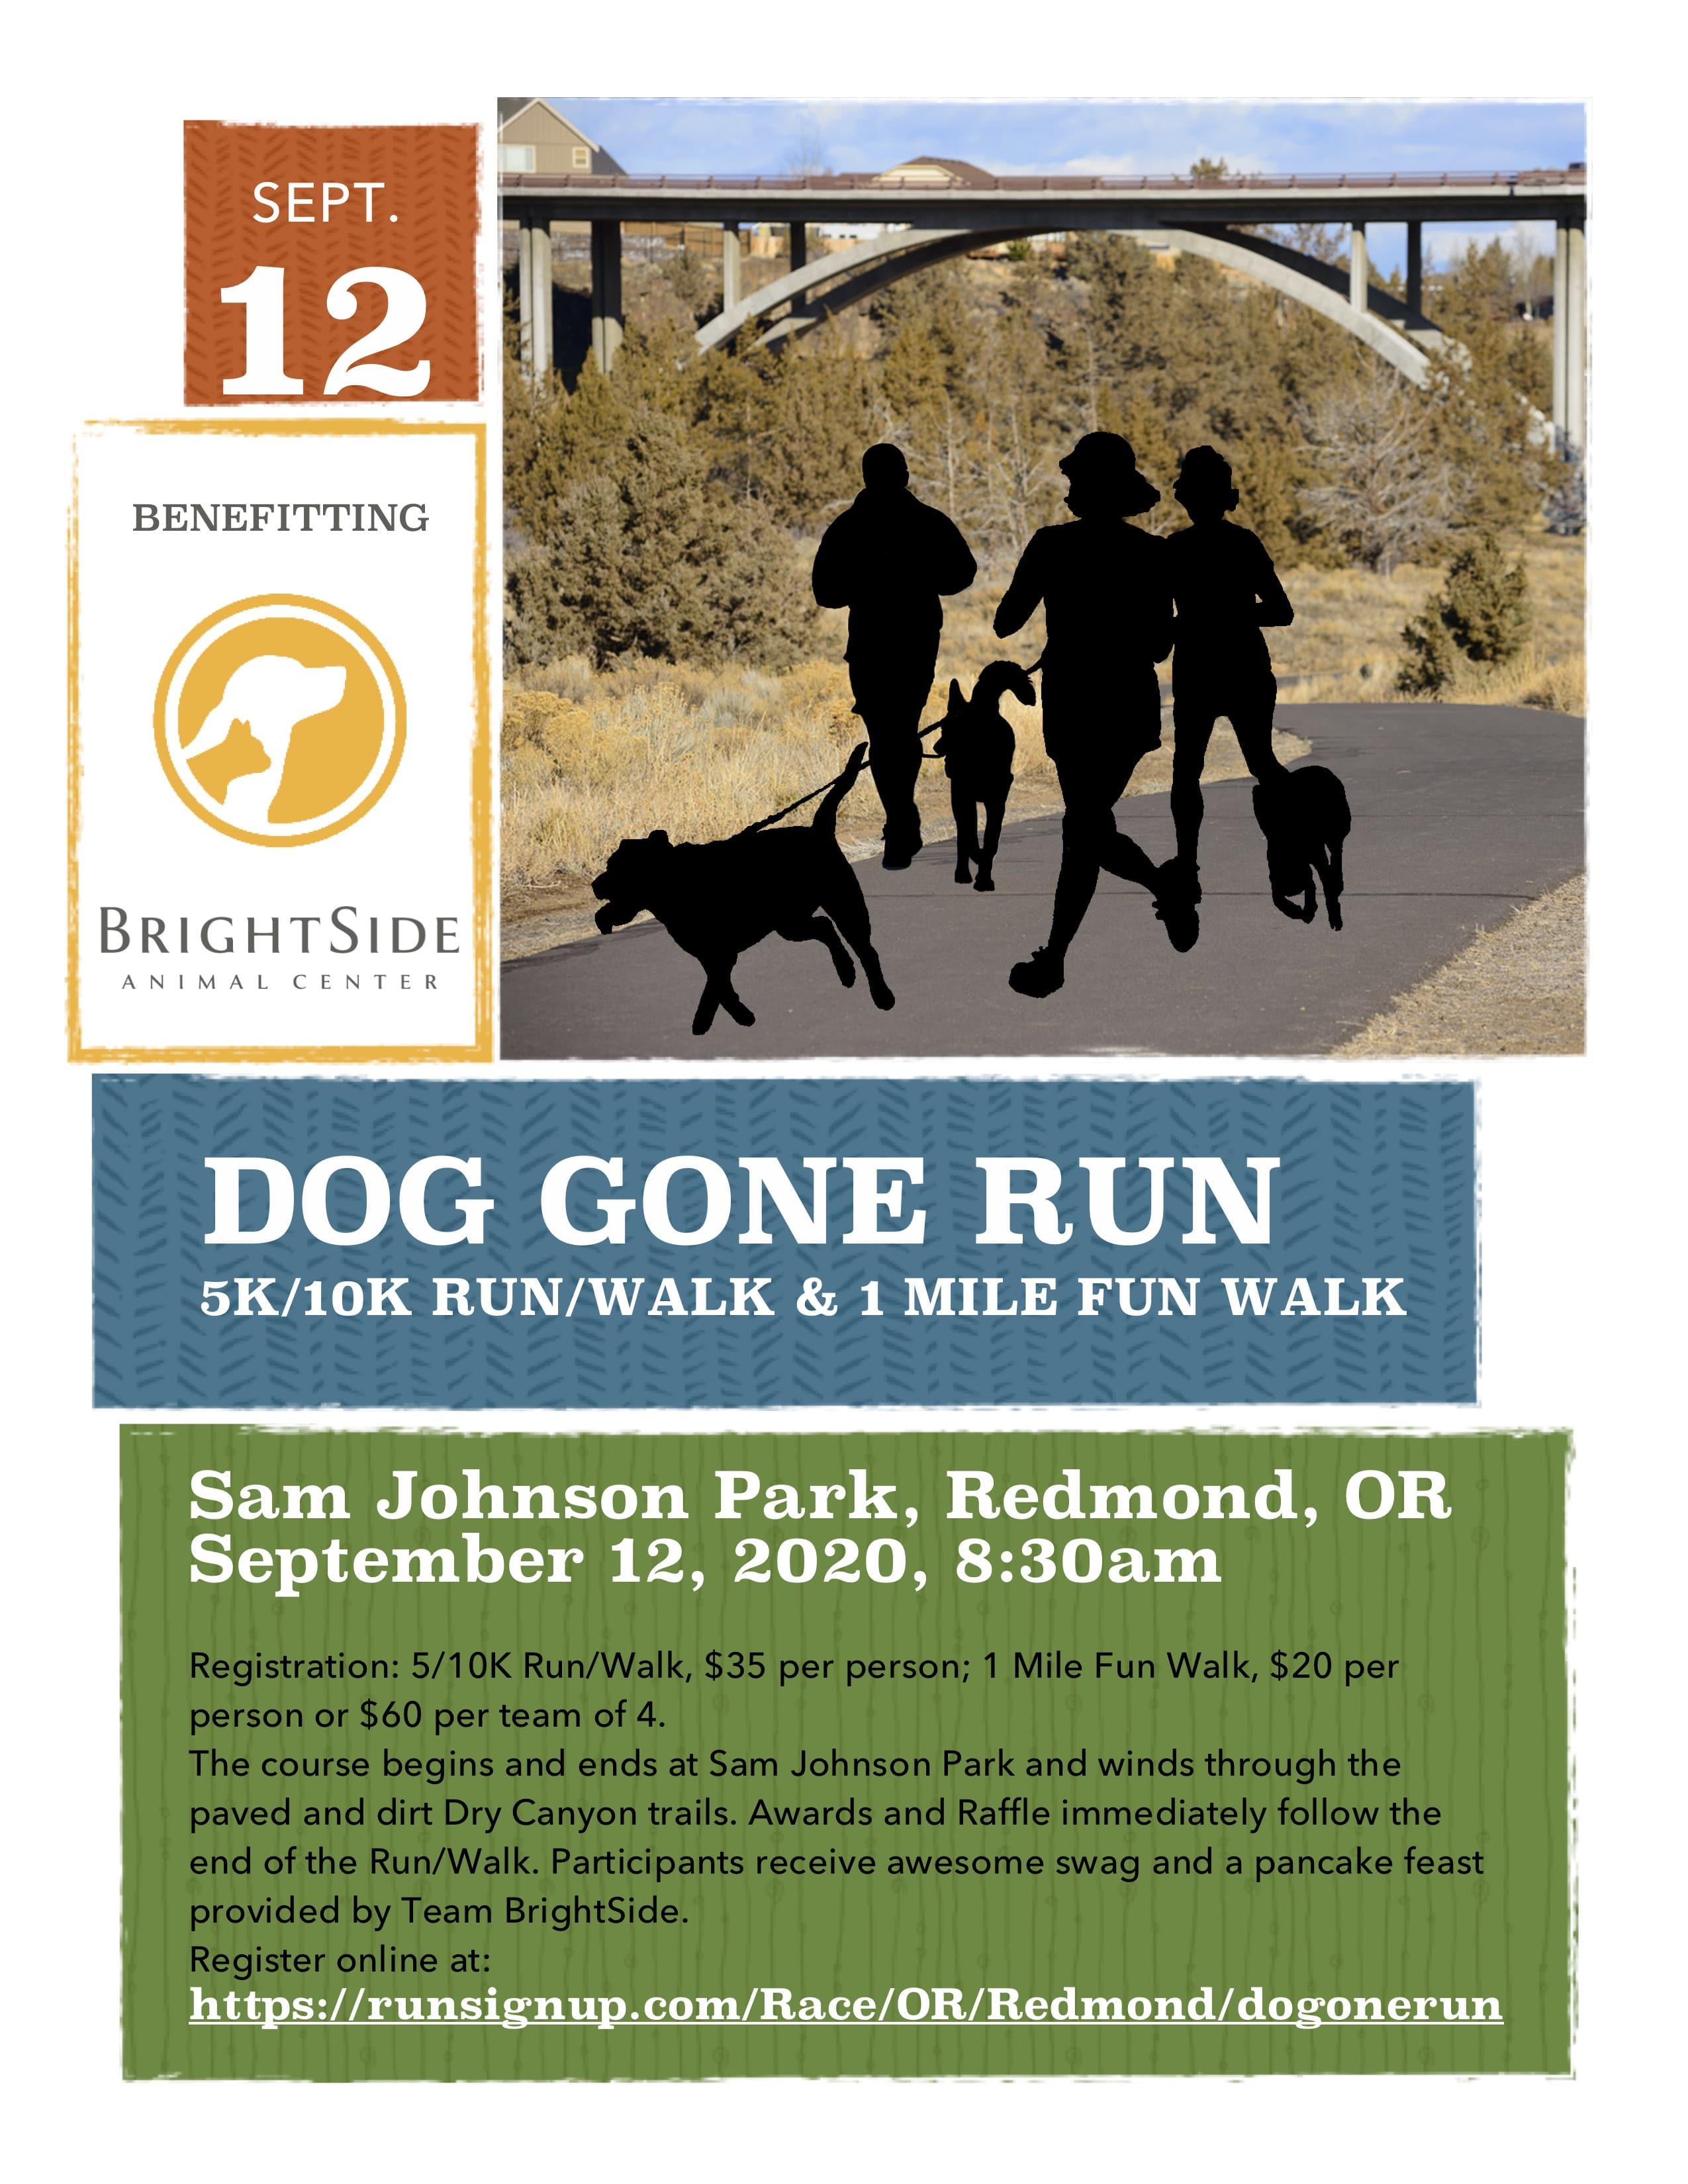 The Dog Gone Run will be held Sept. 12, 2020, at Sam Johnson Park in Redmond, OR.